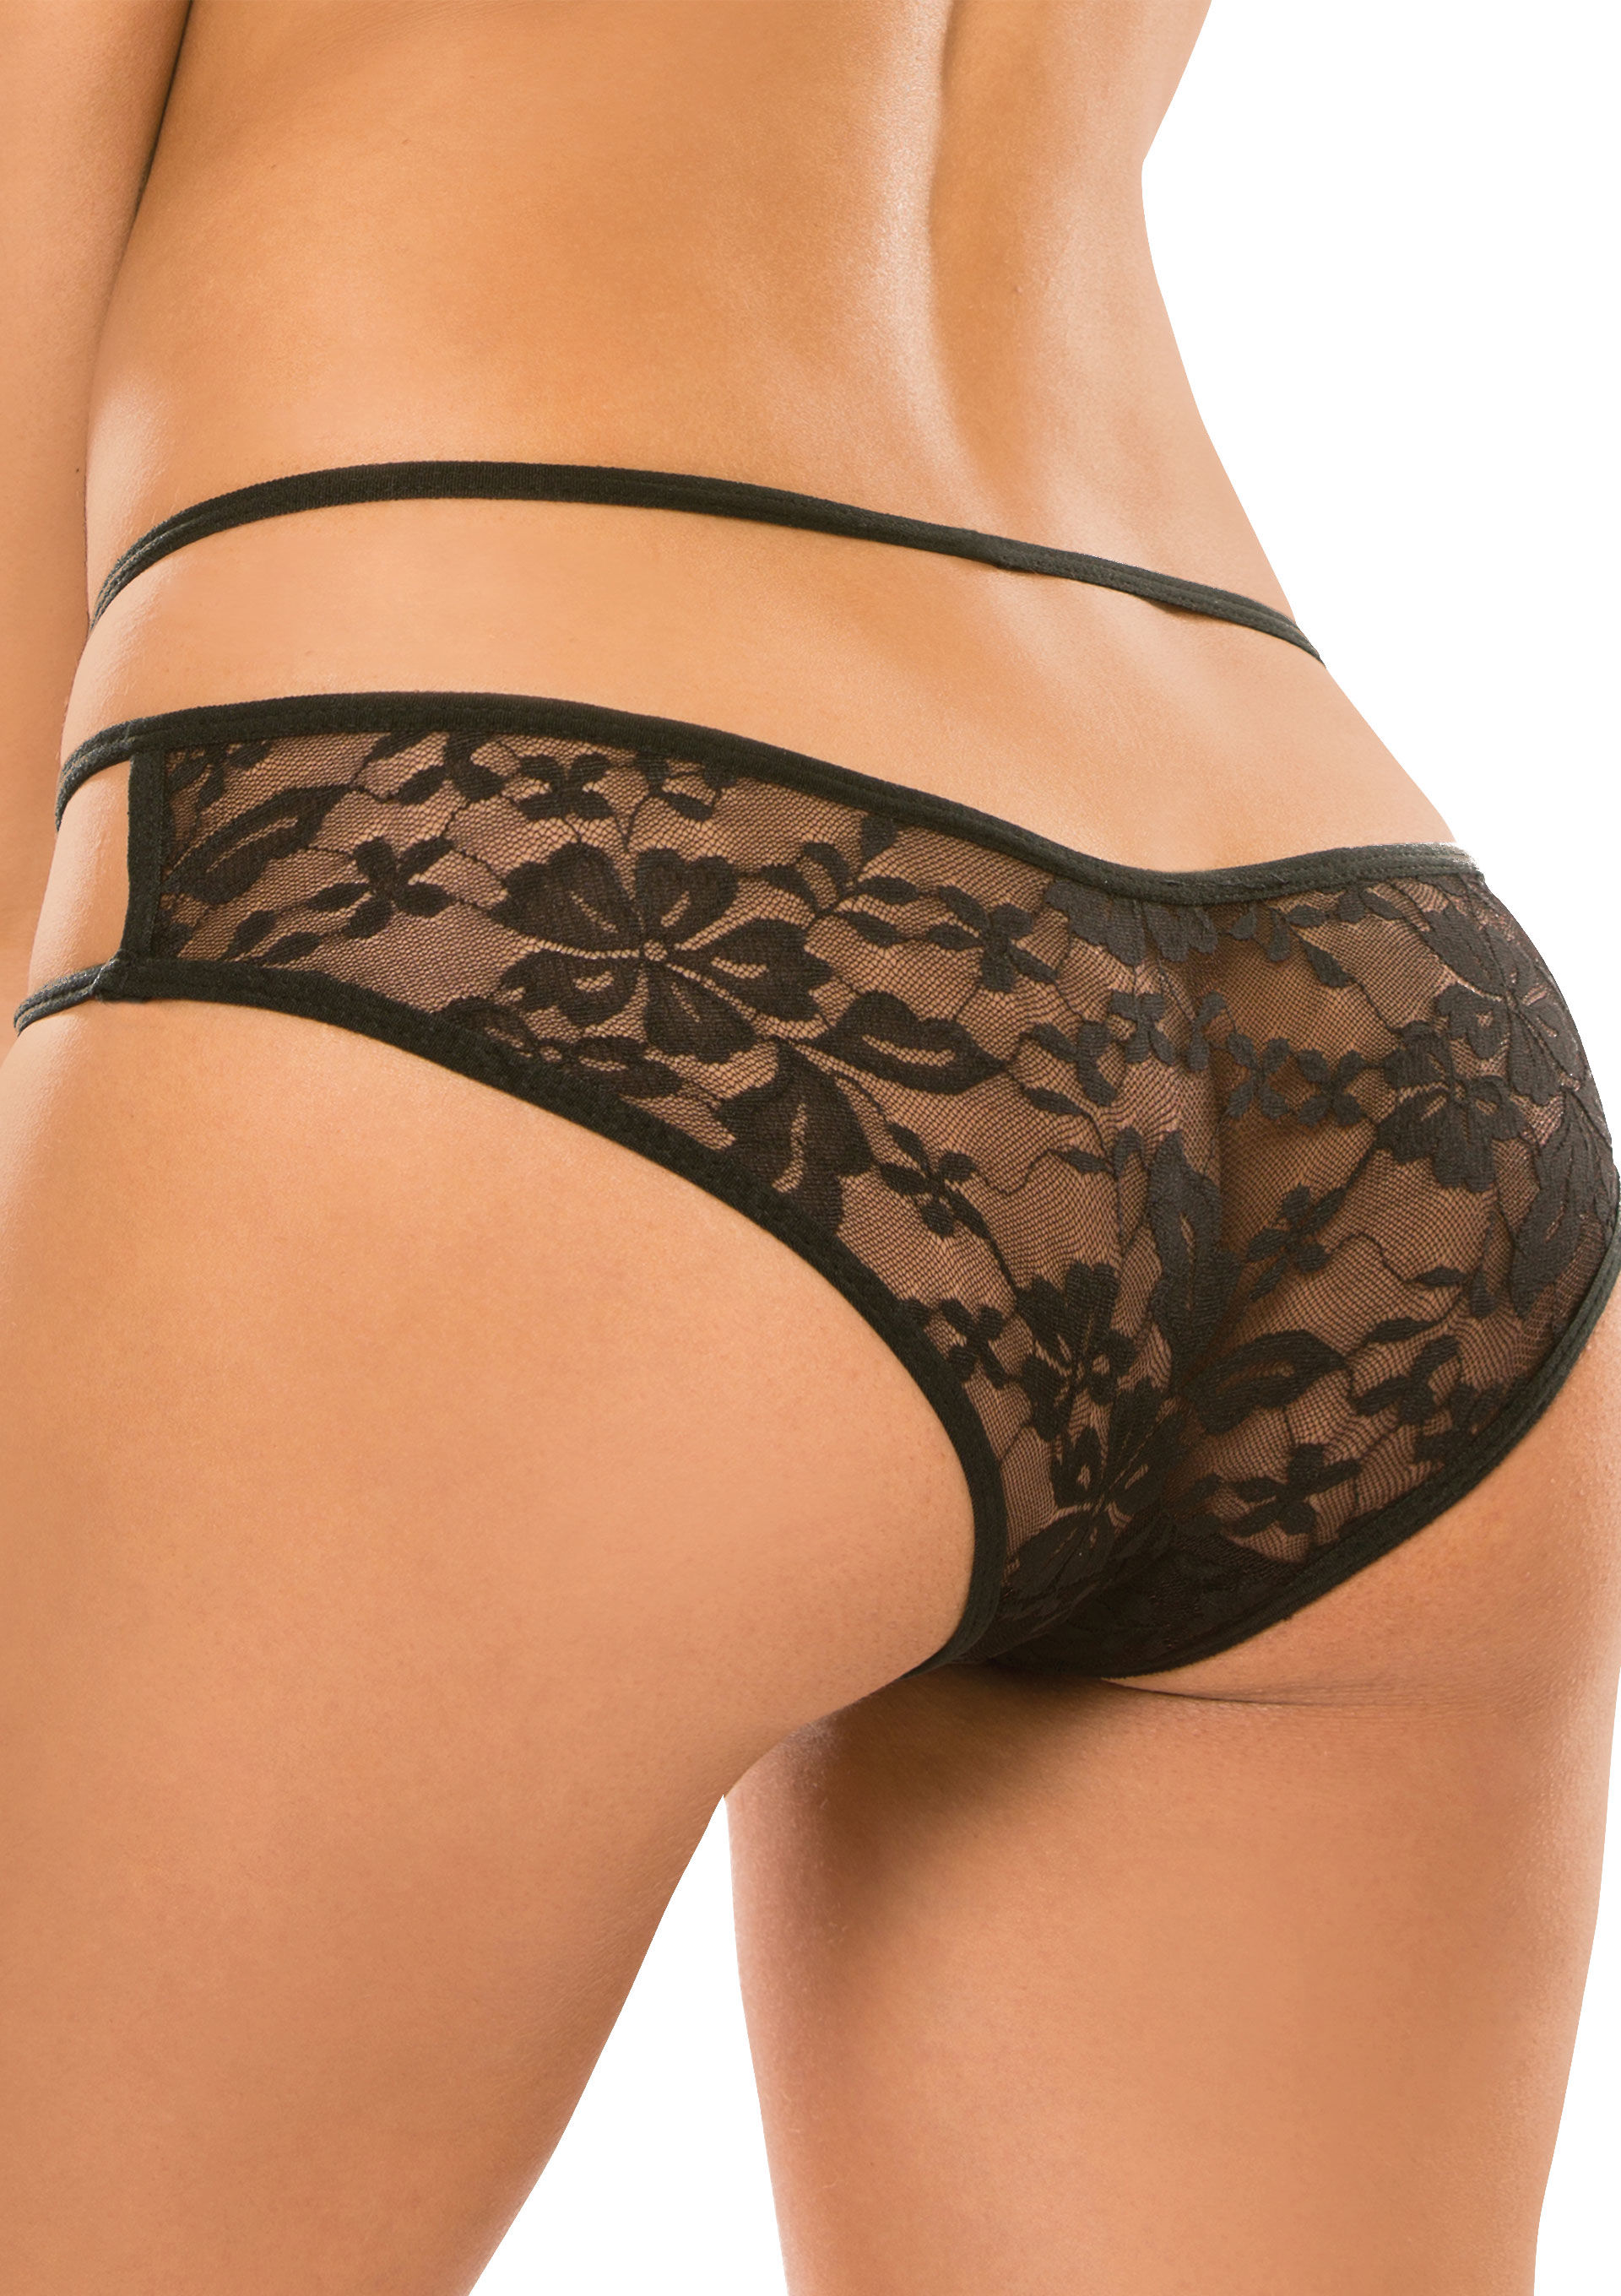 Allure Crotchless Sweet Heavens Panty Black